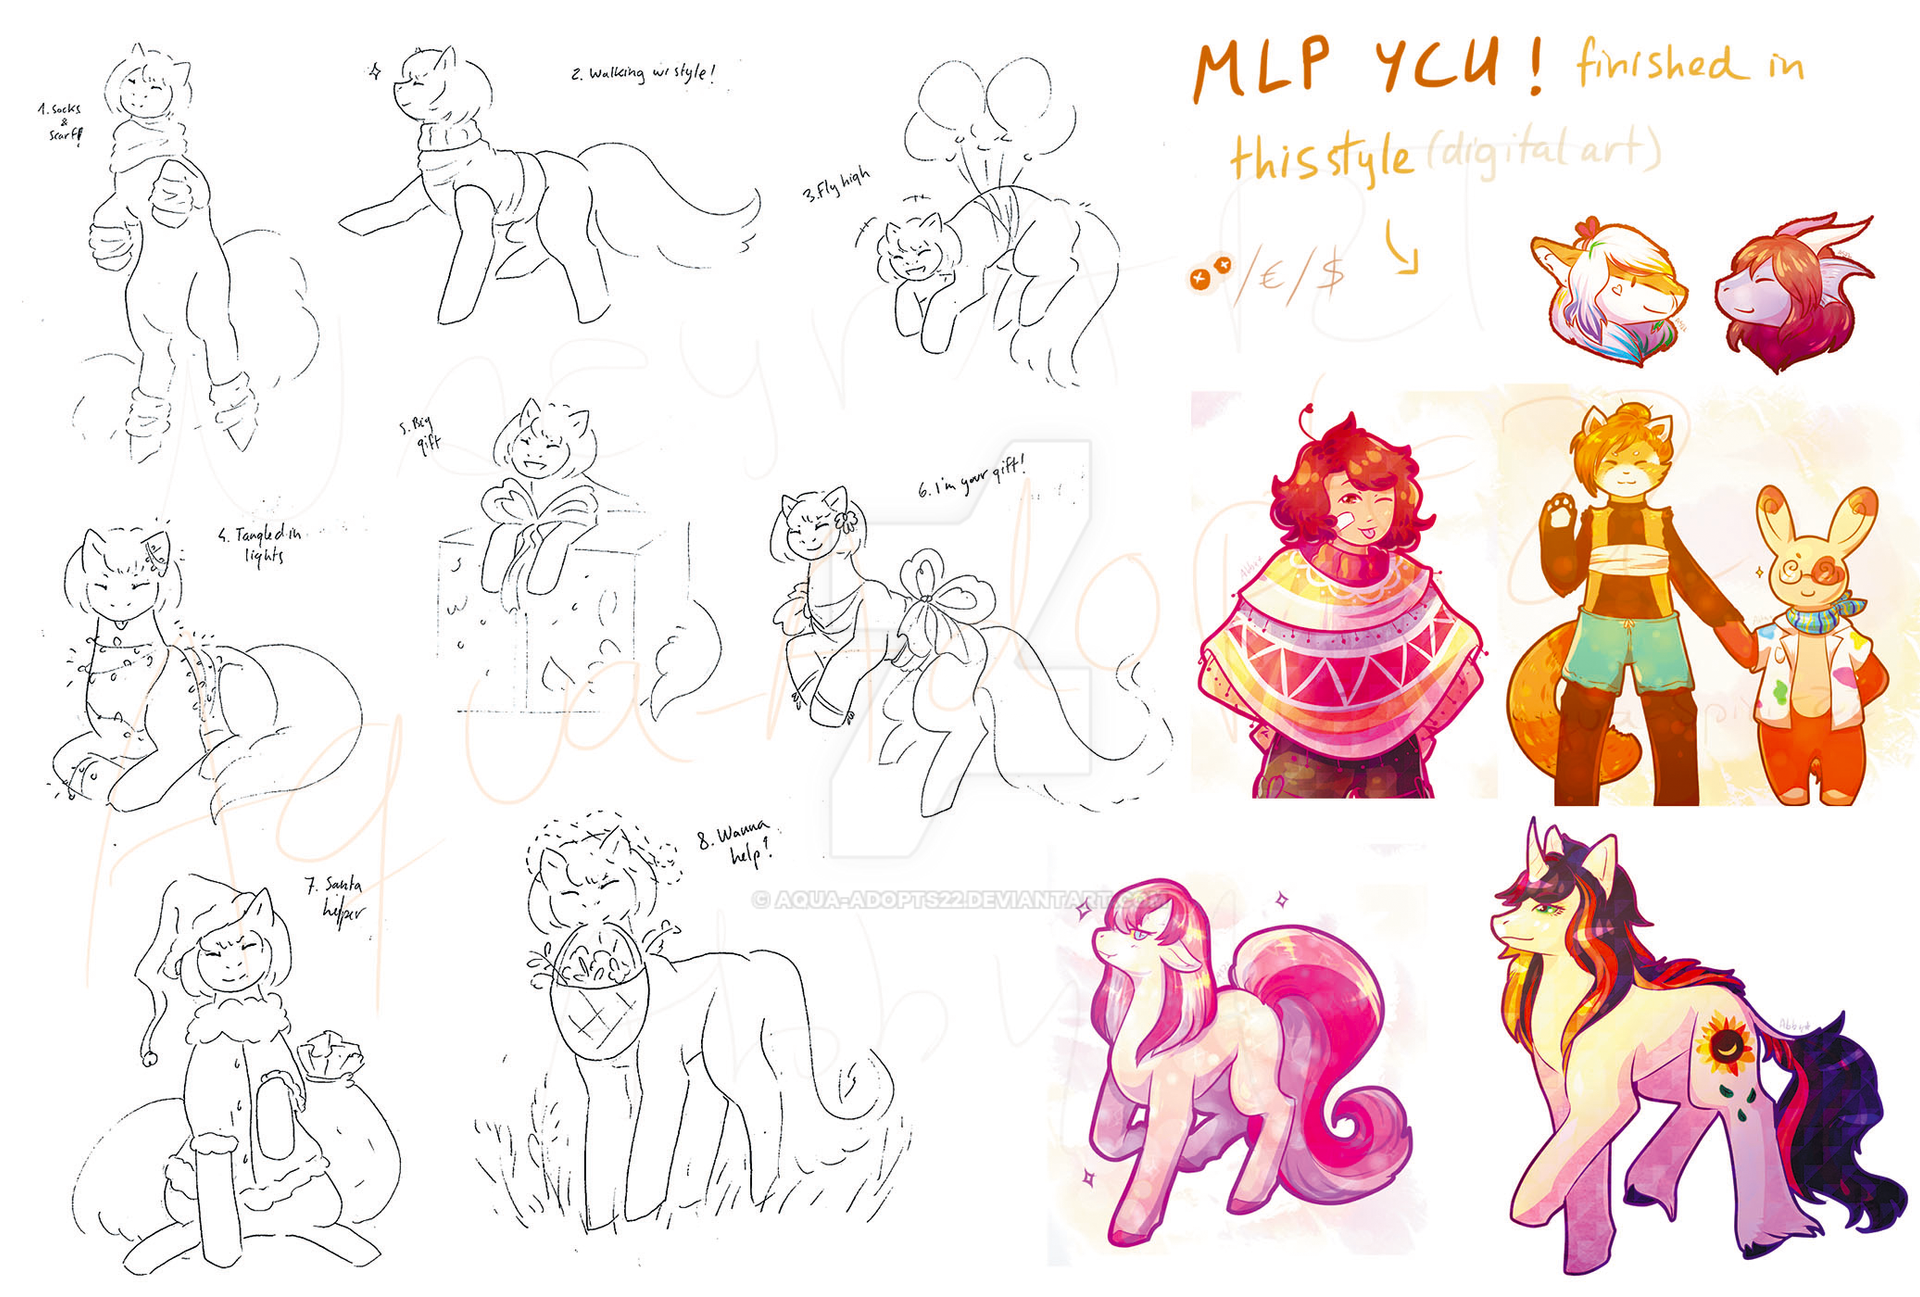 _open_ych__mlp_in_colorful_style___points_euro___by_aqua_adopts22-dcvjtsc.png